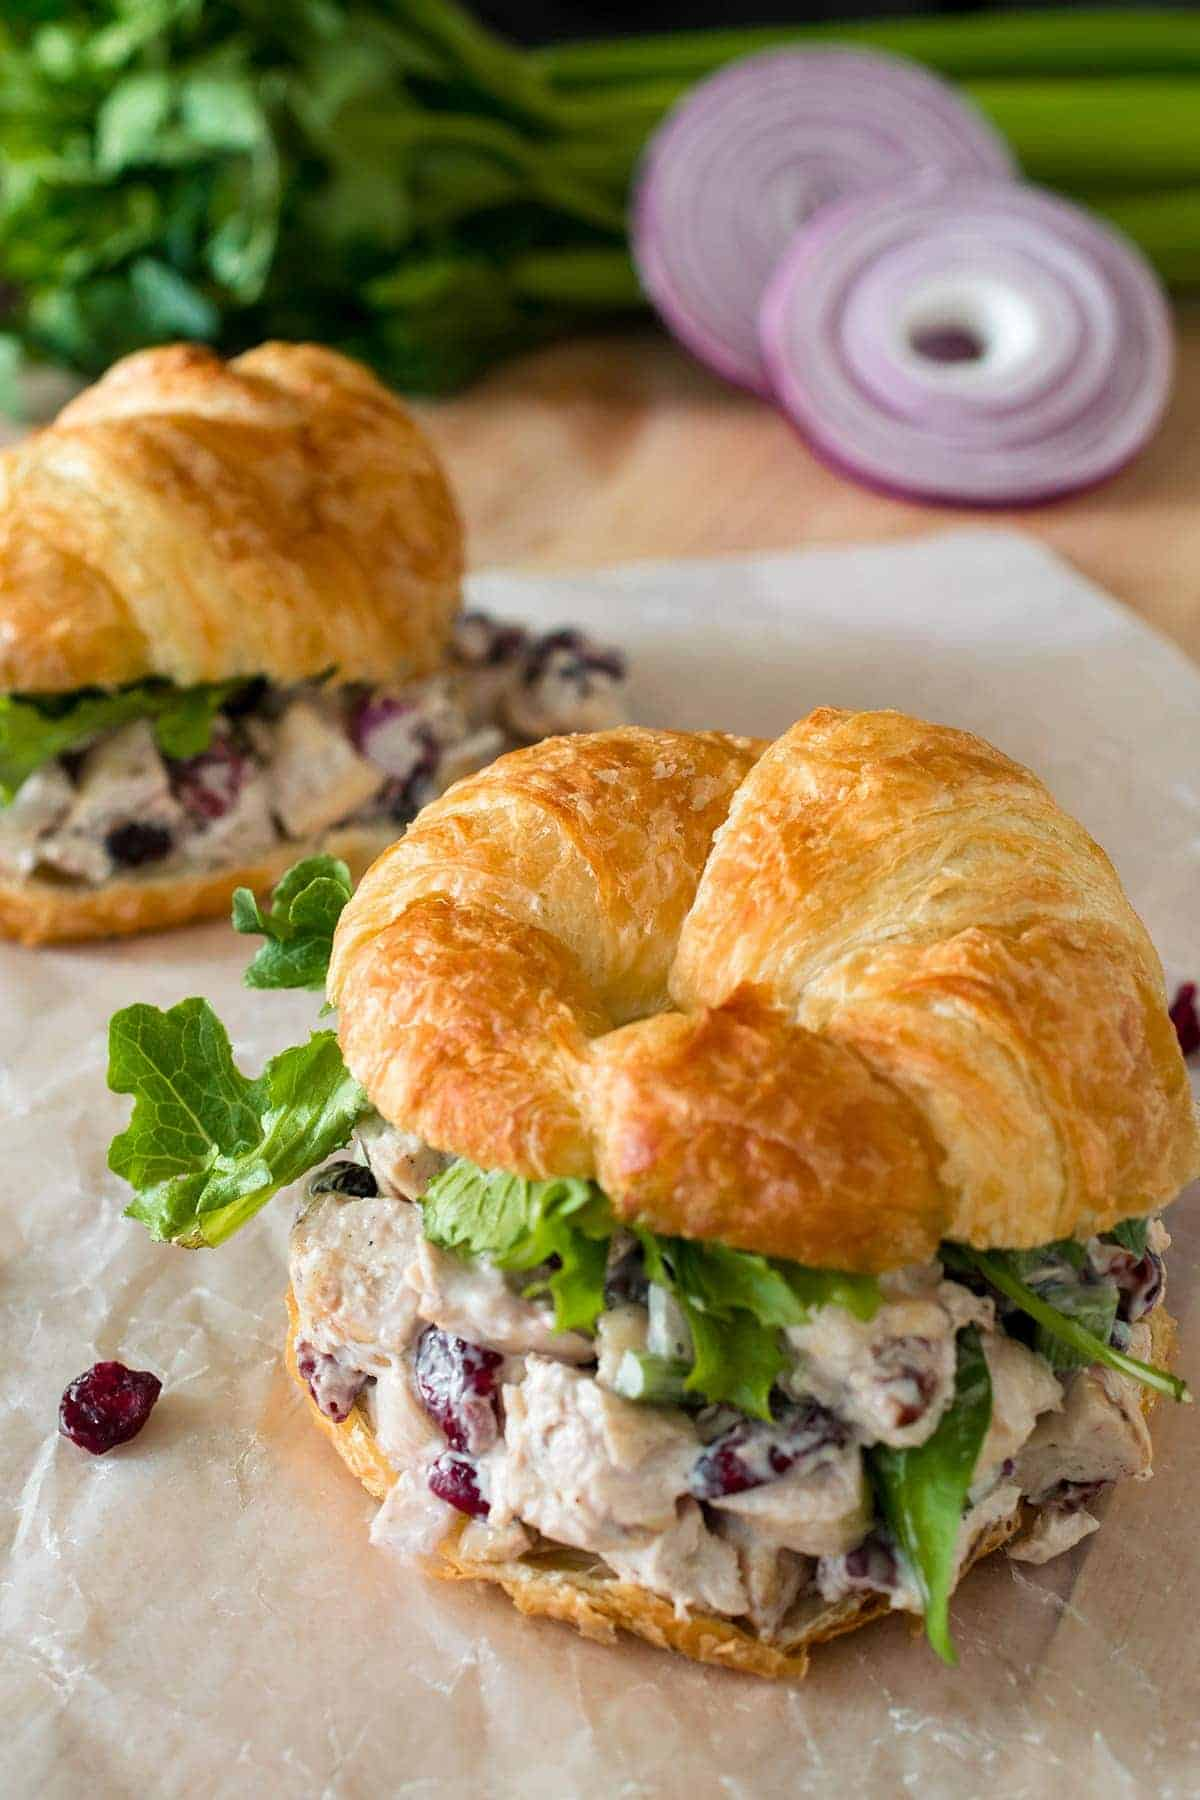 Cranberry Chicken Salad on a Croissant with romaine lettuce for a healthy lunch